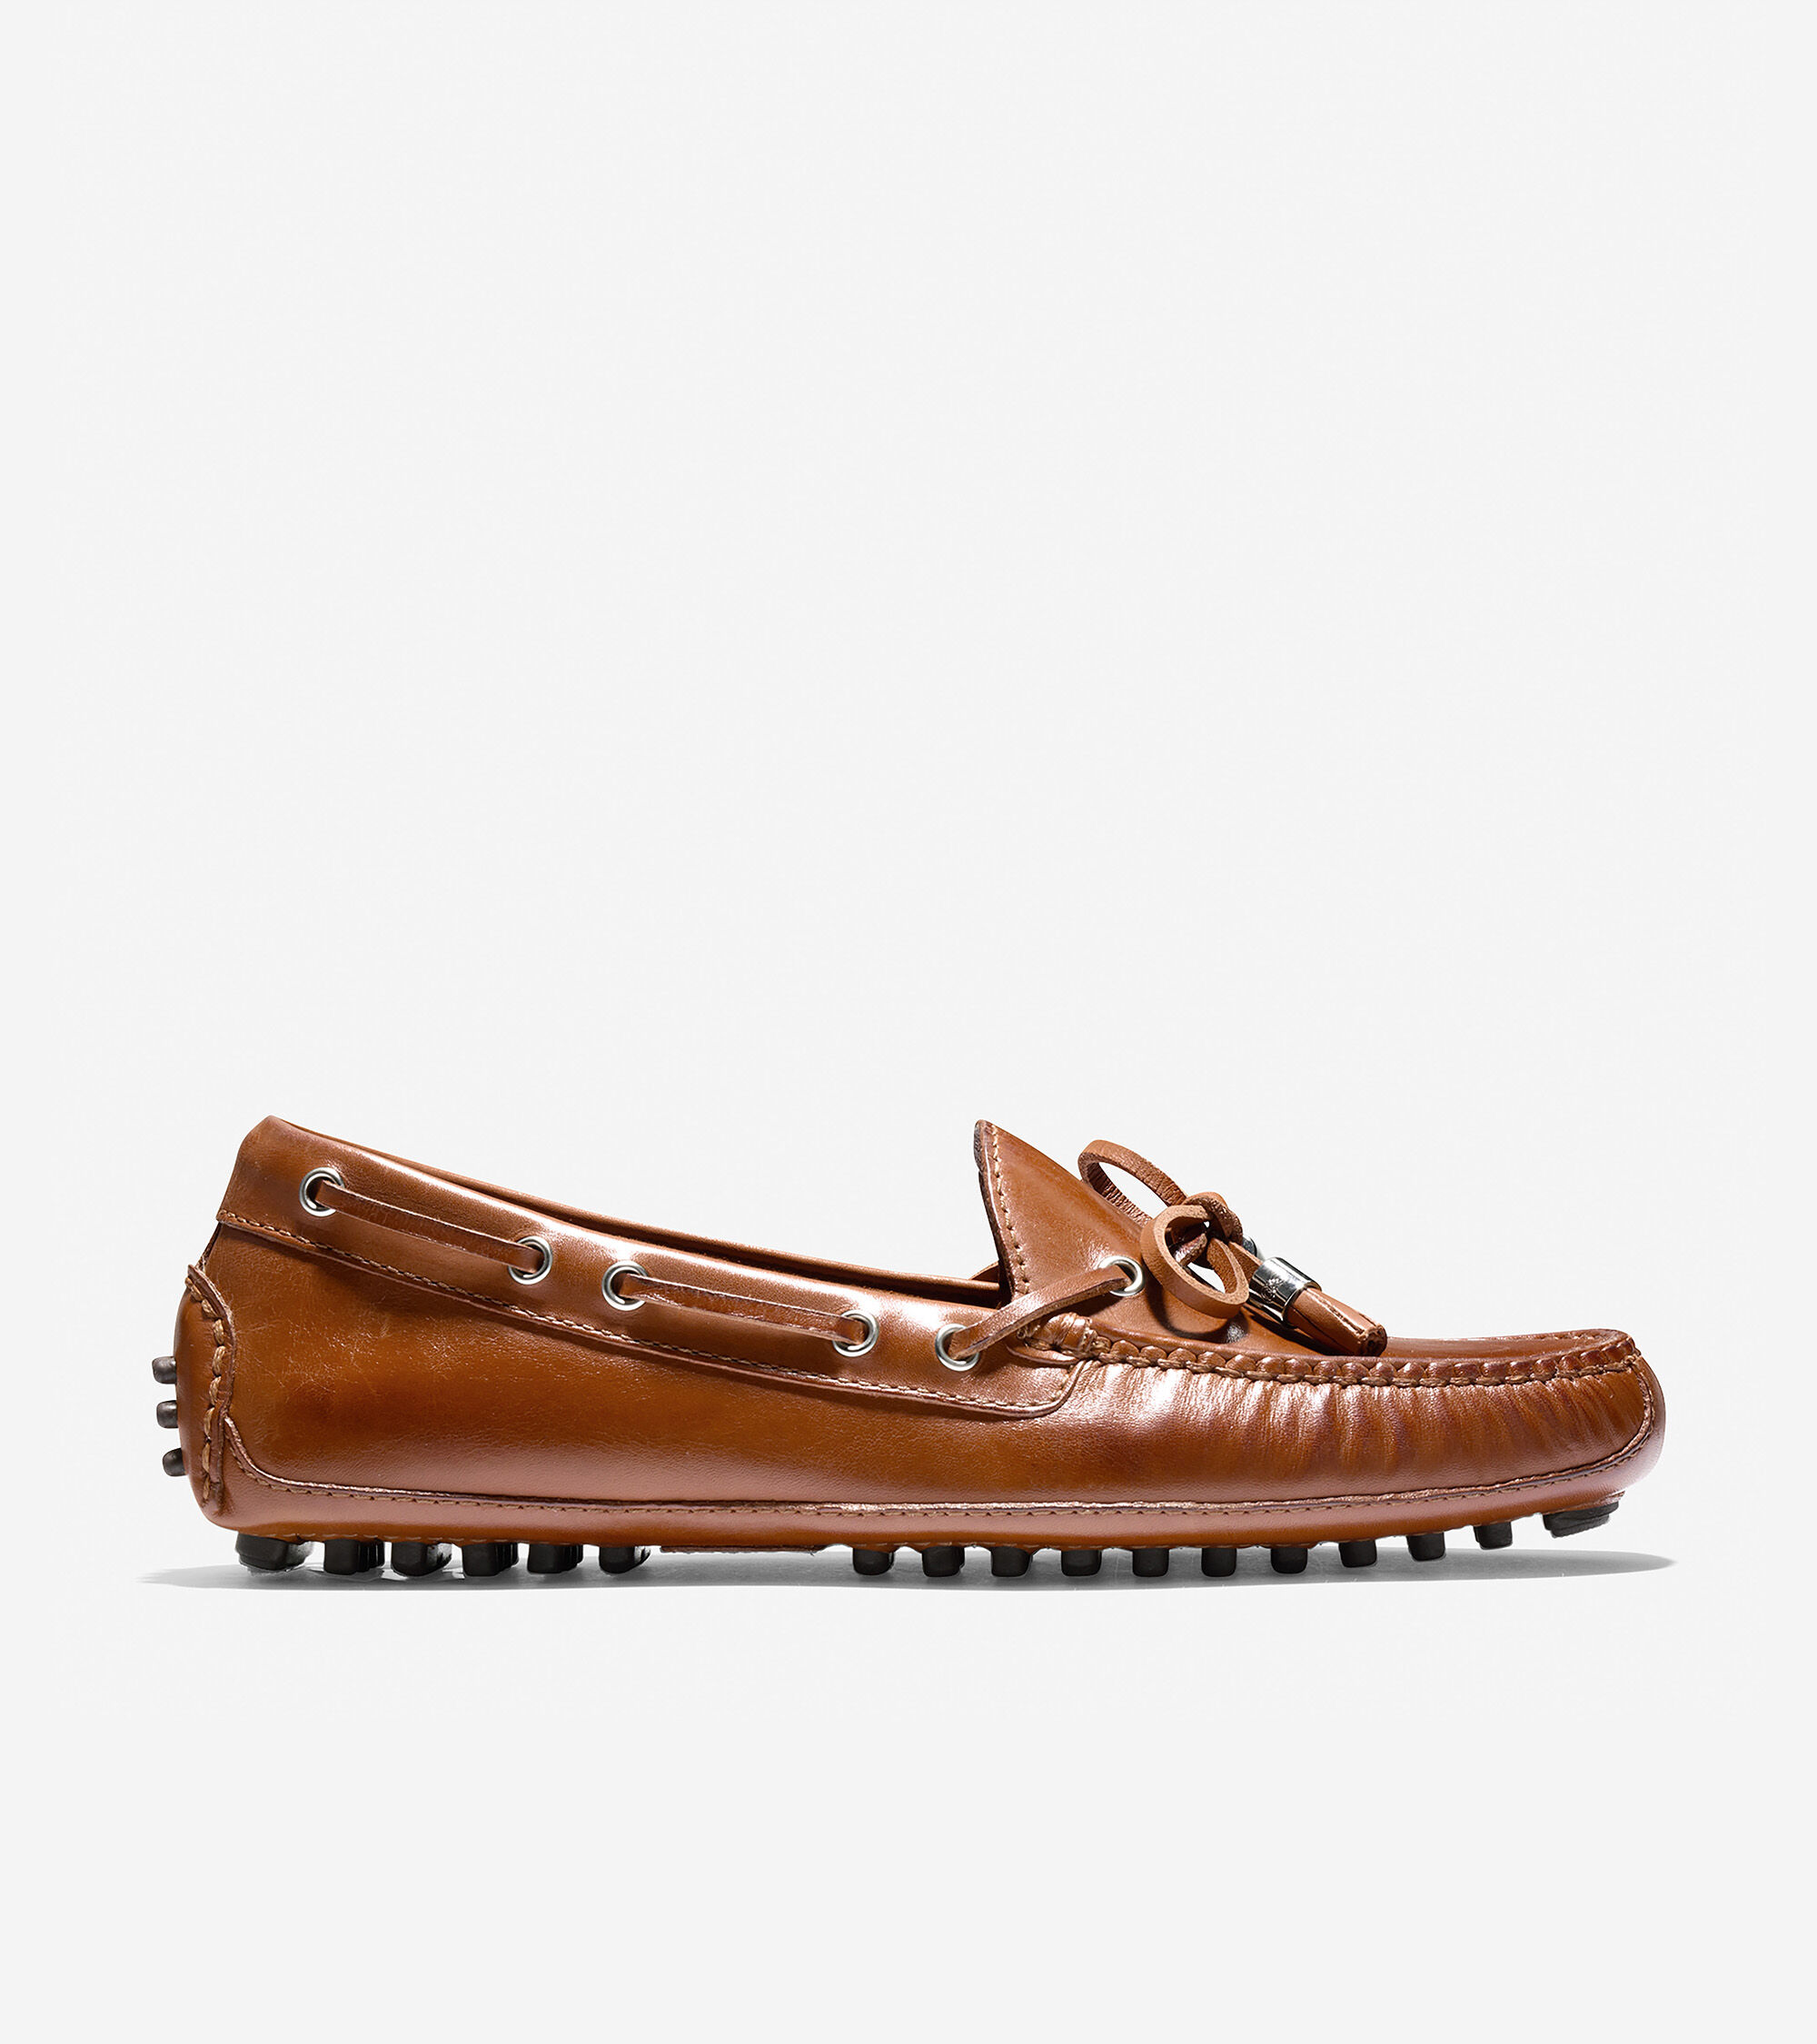 b52a6d3926a Womens Grant Drivers in Woodbury Leather